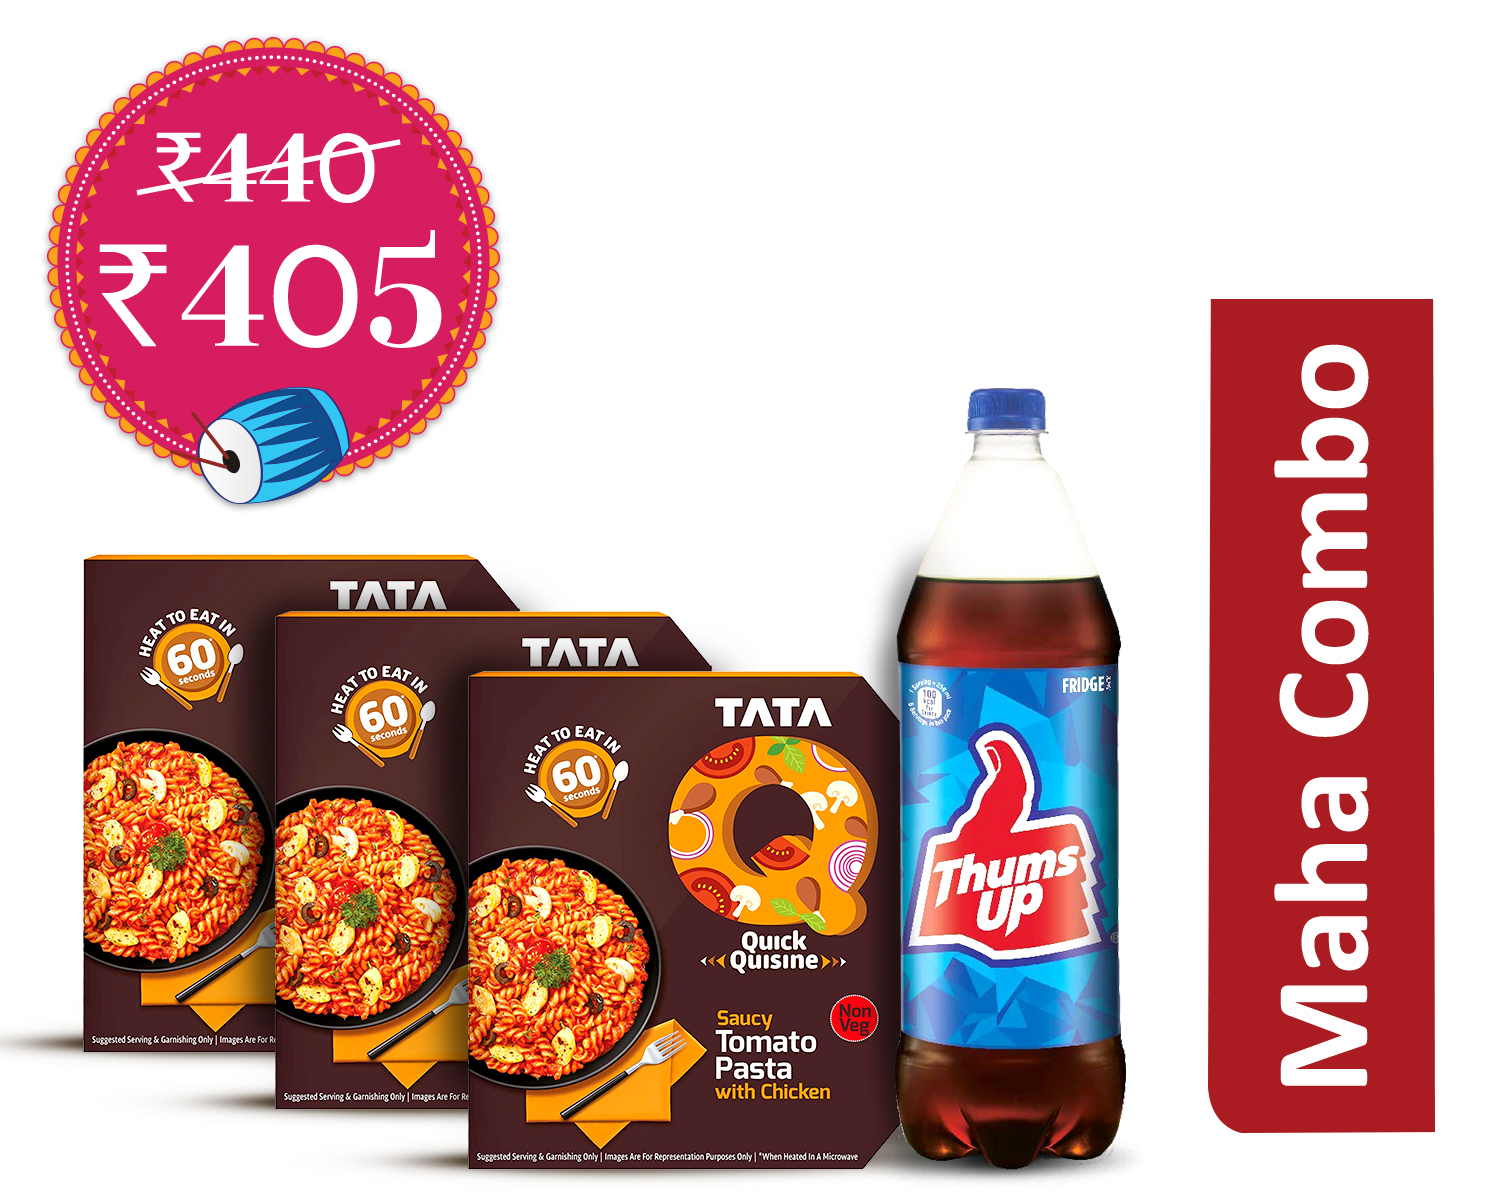 Tasty-Treat Pack (1Unit) : TataQ Saucy Tomato Pasta With Chicken * 3 + Thums Up 1.25Ltr